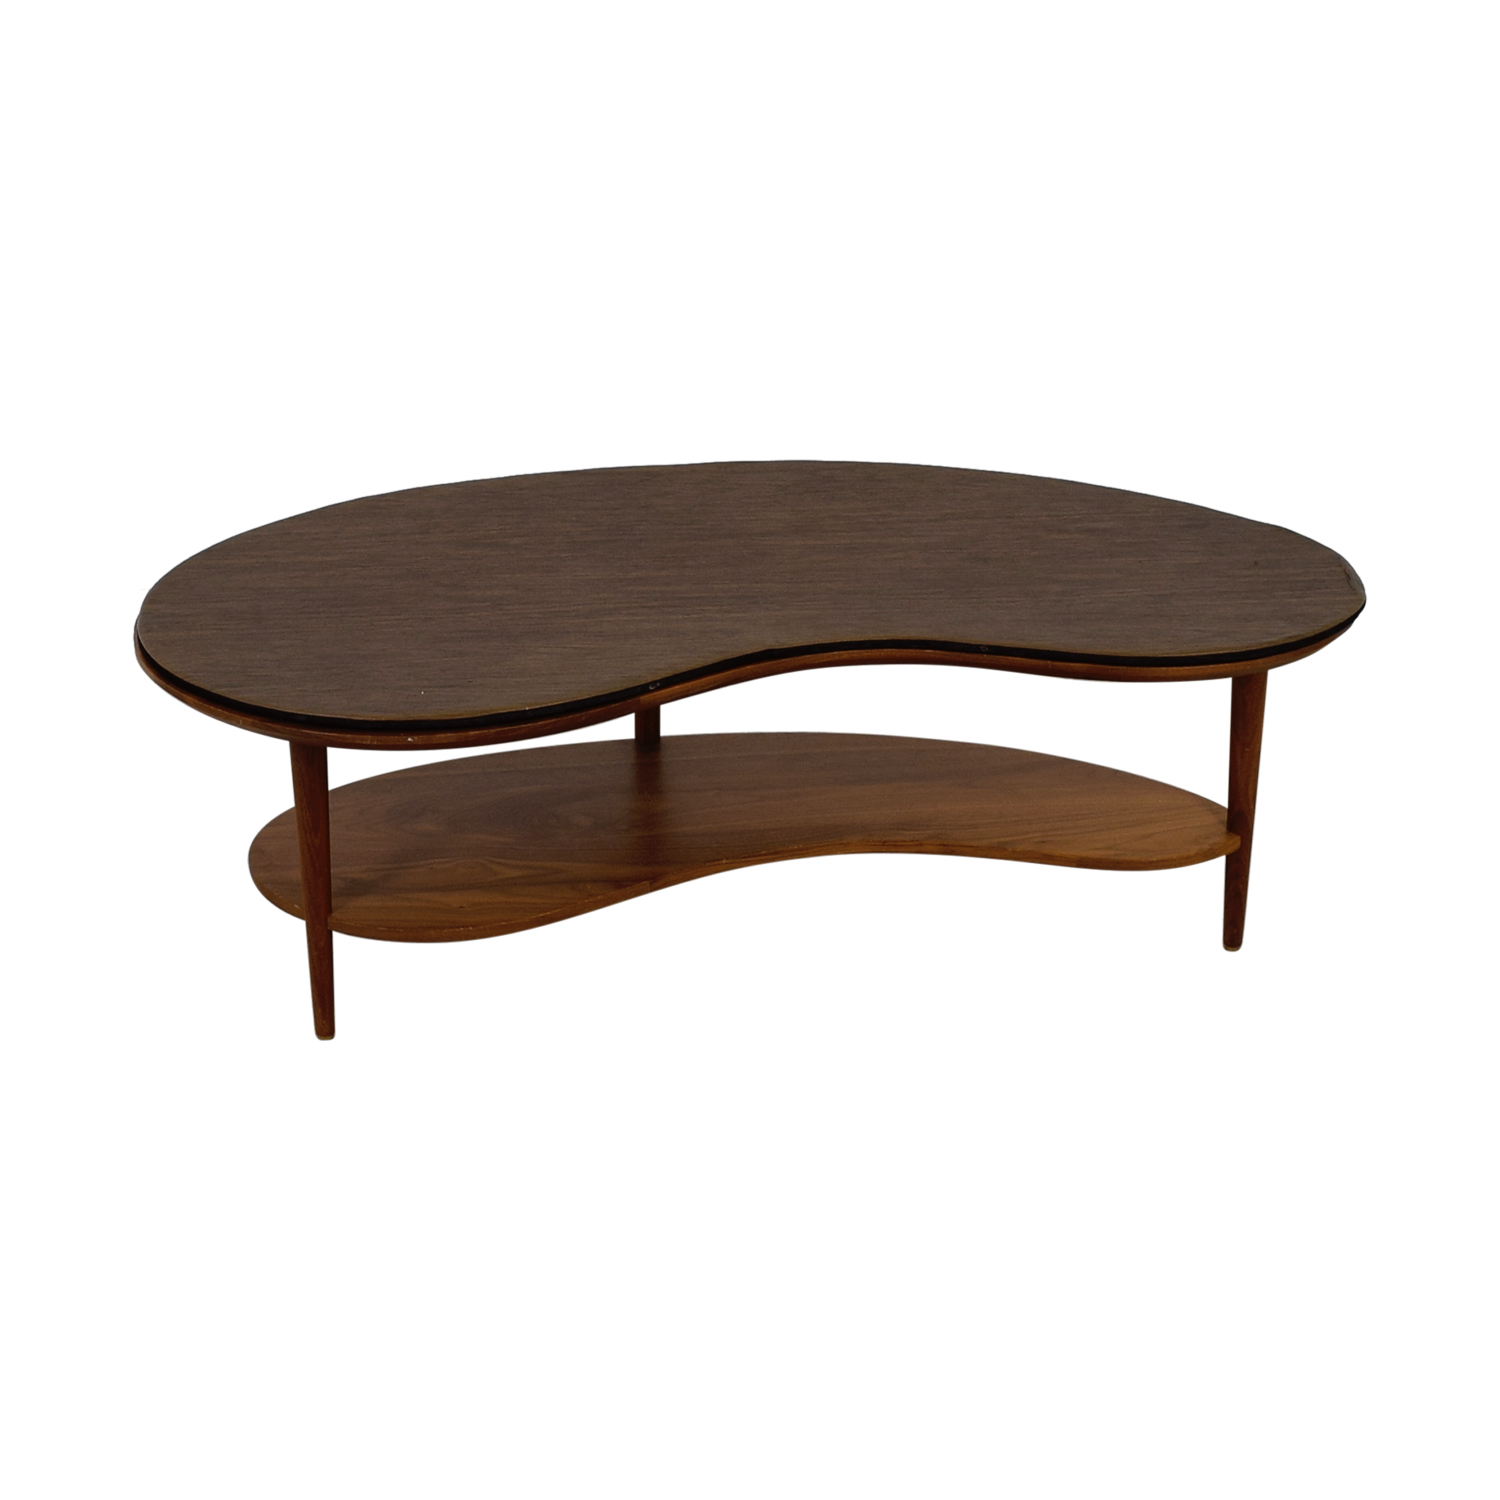 Room & Board Room & Board Signed Wood Coffee Table with Pad brown